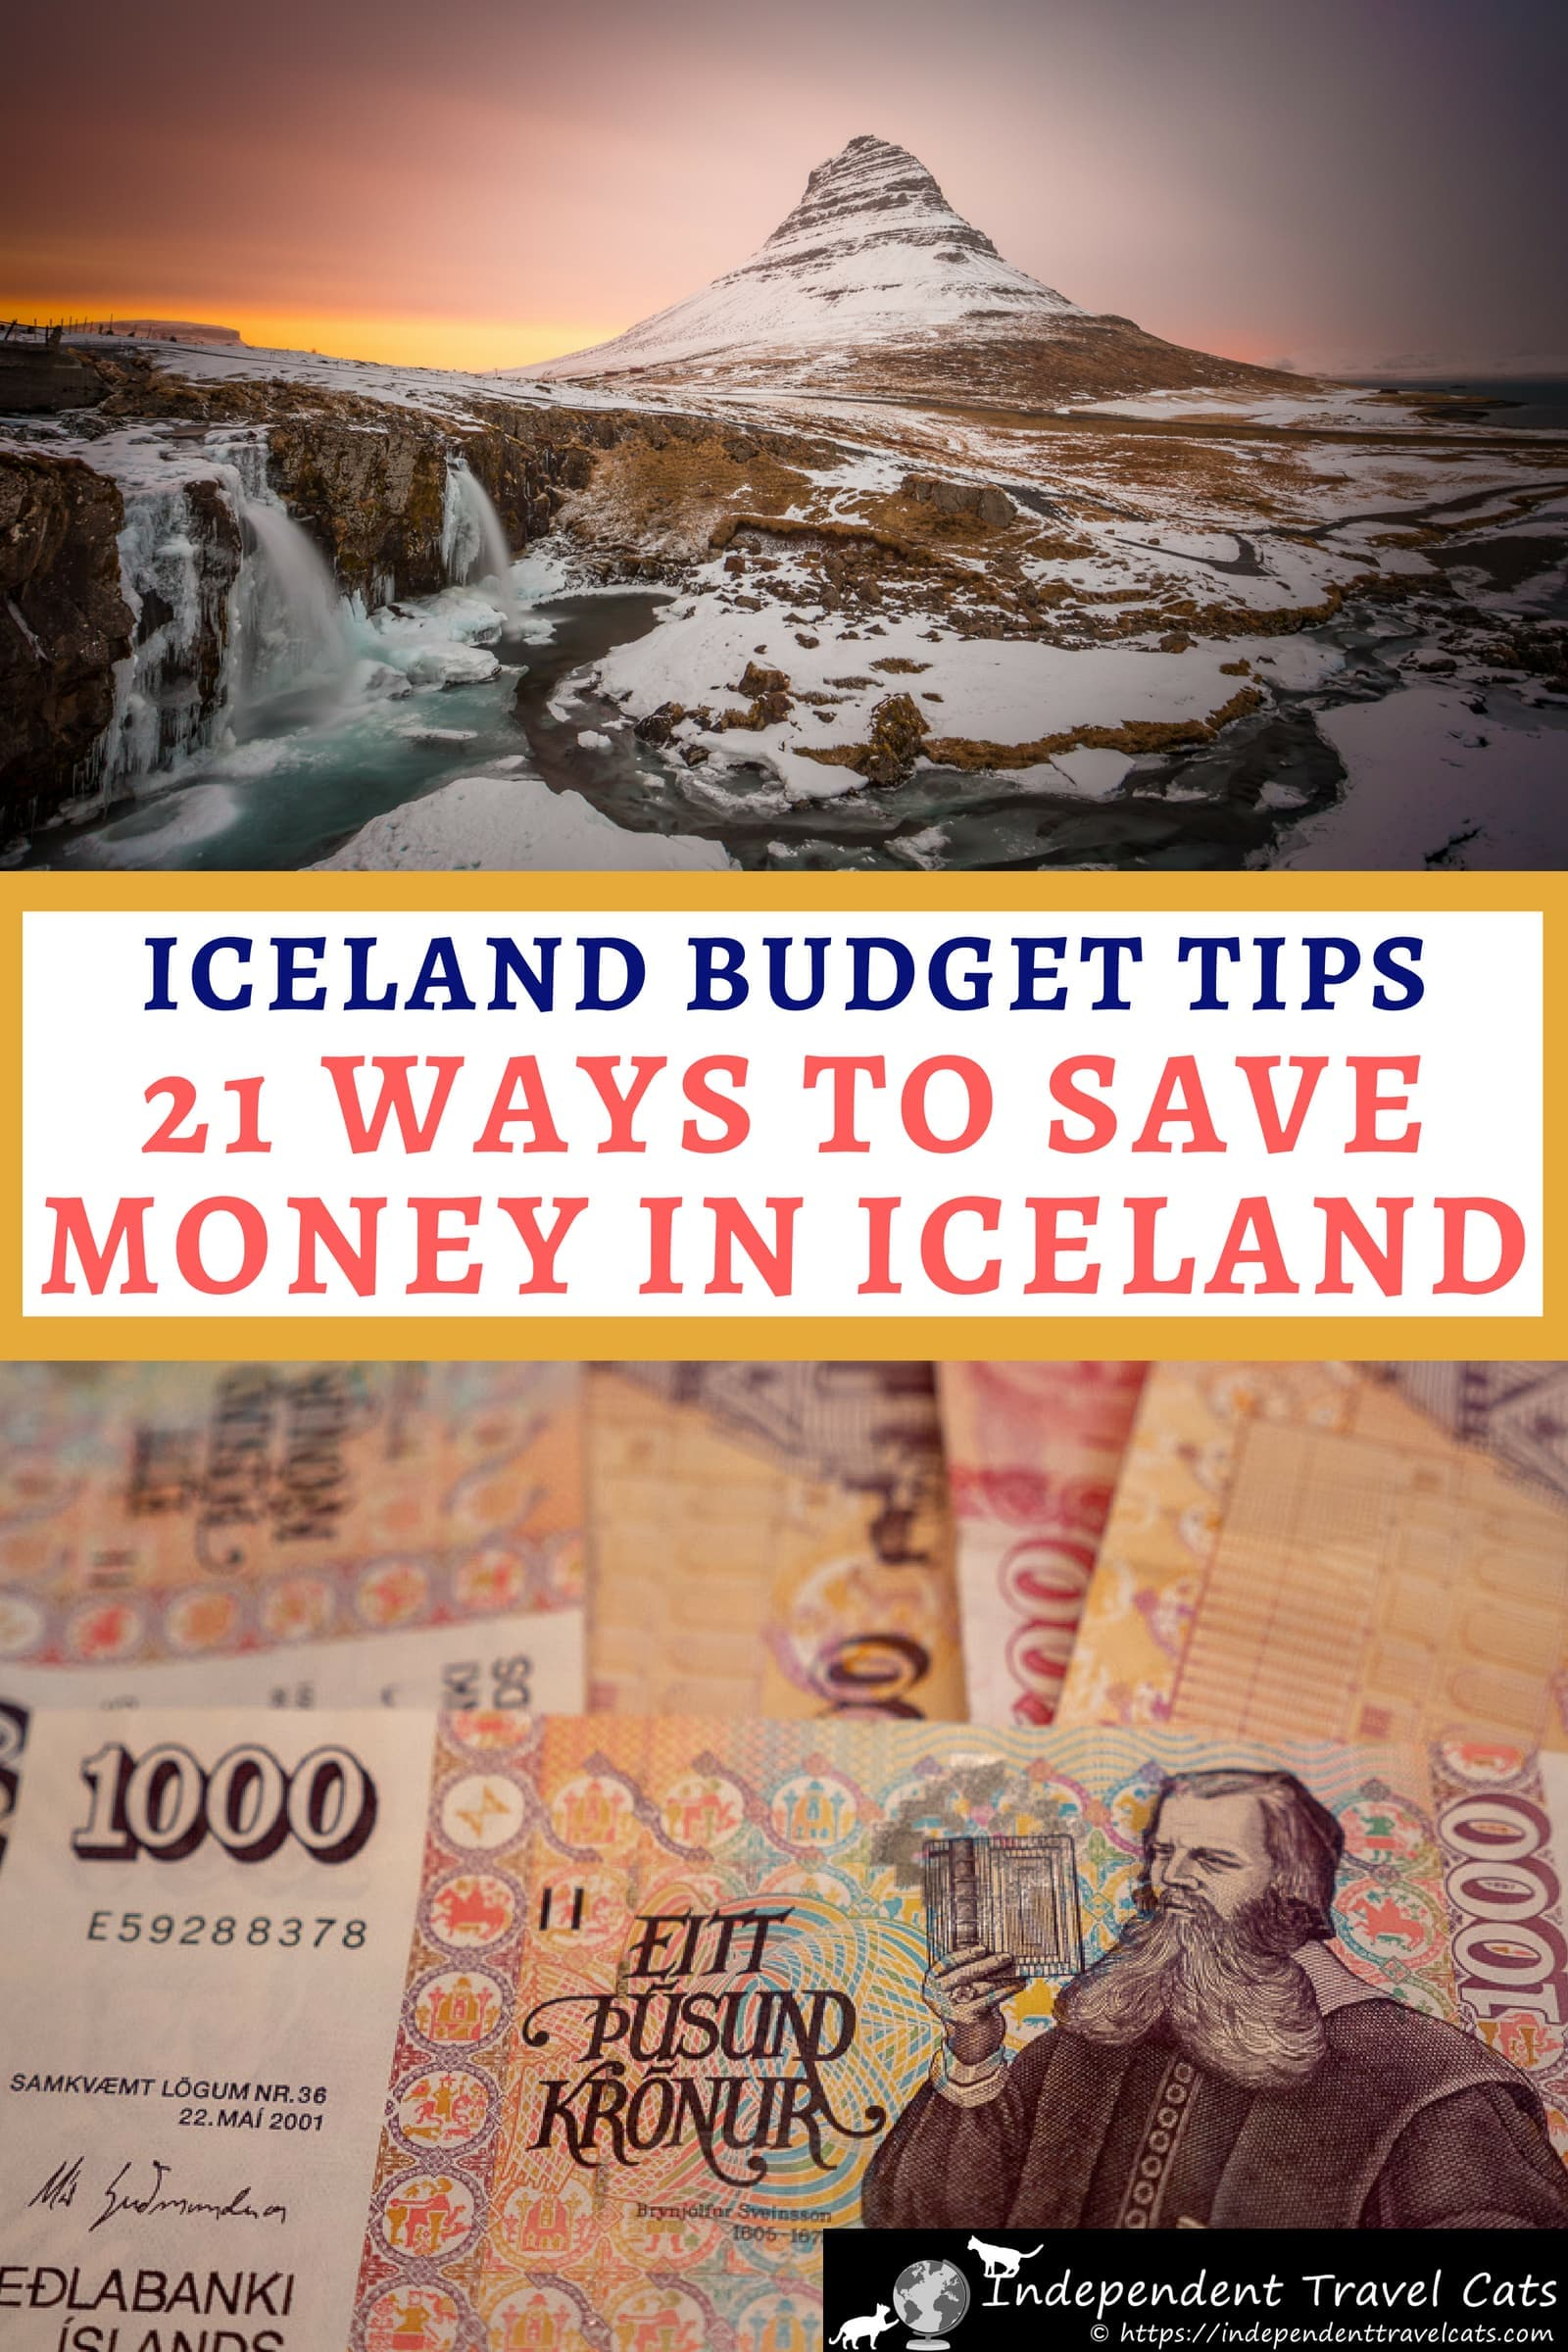 Iceland is a popular but expensive travel destination. To help with your trip planning, we've put together a guide to how to travel to Iceland on a budget. We share 20 budget tips to help you save money in Iceland on flights, rental cars, hotels, dining, alcohol, groceries, camping, and sightseeing to help you get the most out of your money and your trip to Iceland. Tips are based on our 6 weeks traveling in Iceland. #Iceland #Icelandtravel #Icelandonabudget #travel #BudgetTravel #traveltips